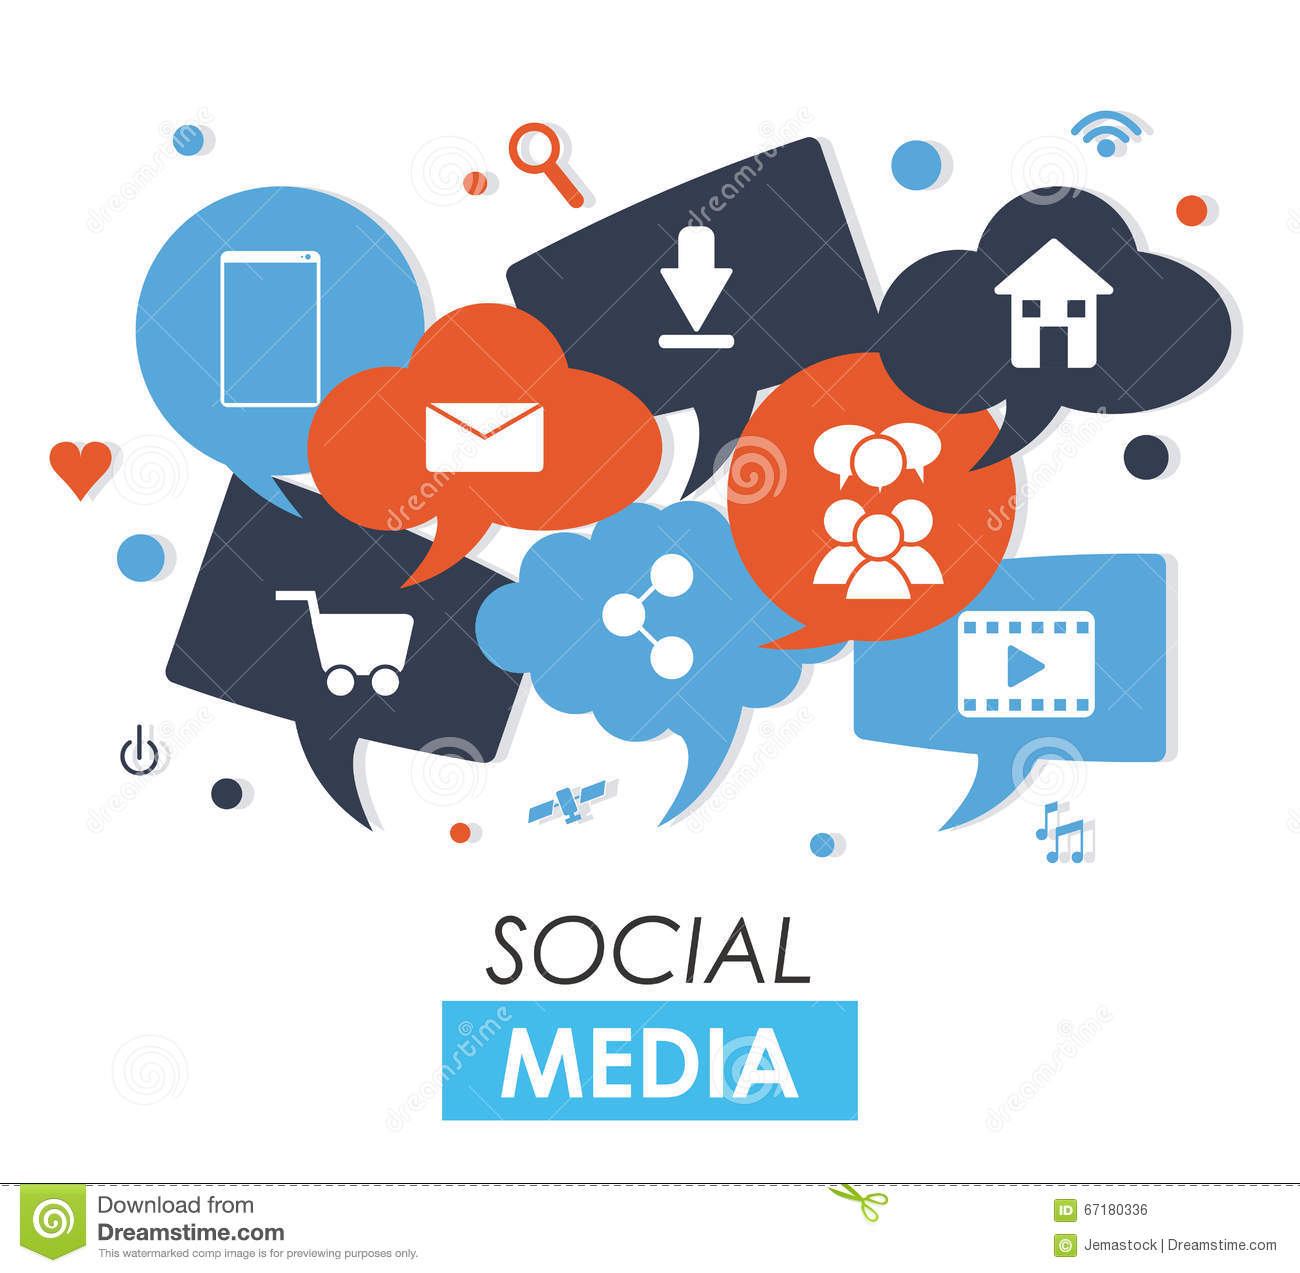 Social Media Design Stock Vector - Image: 67180336